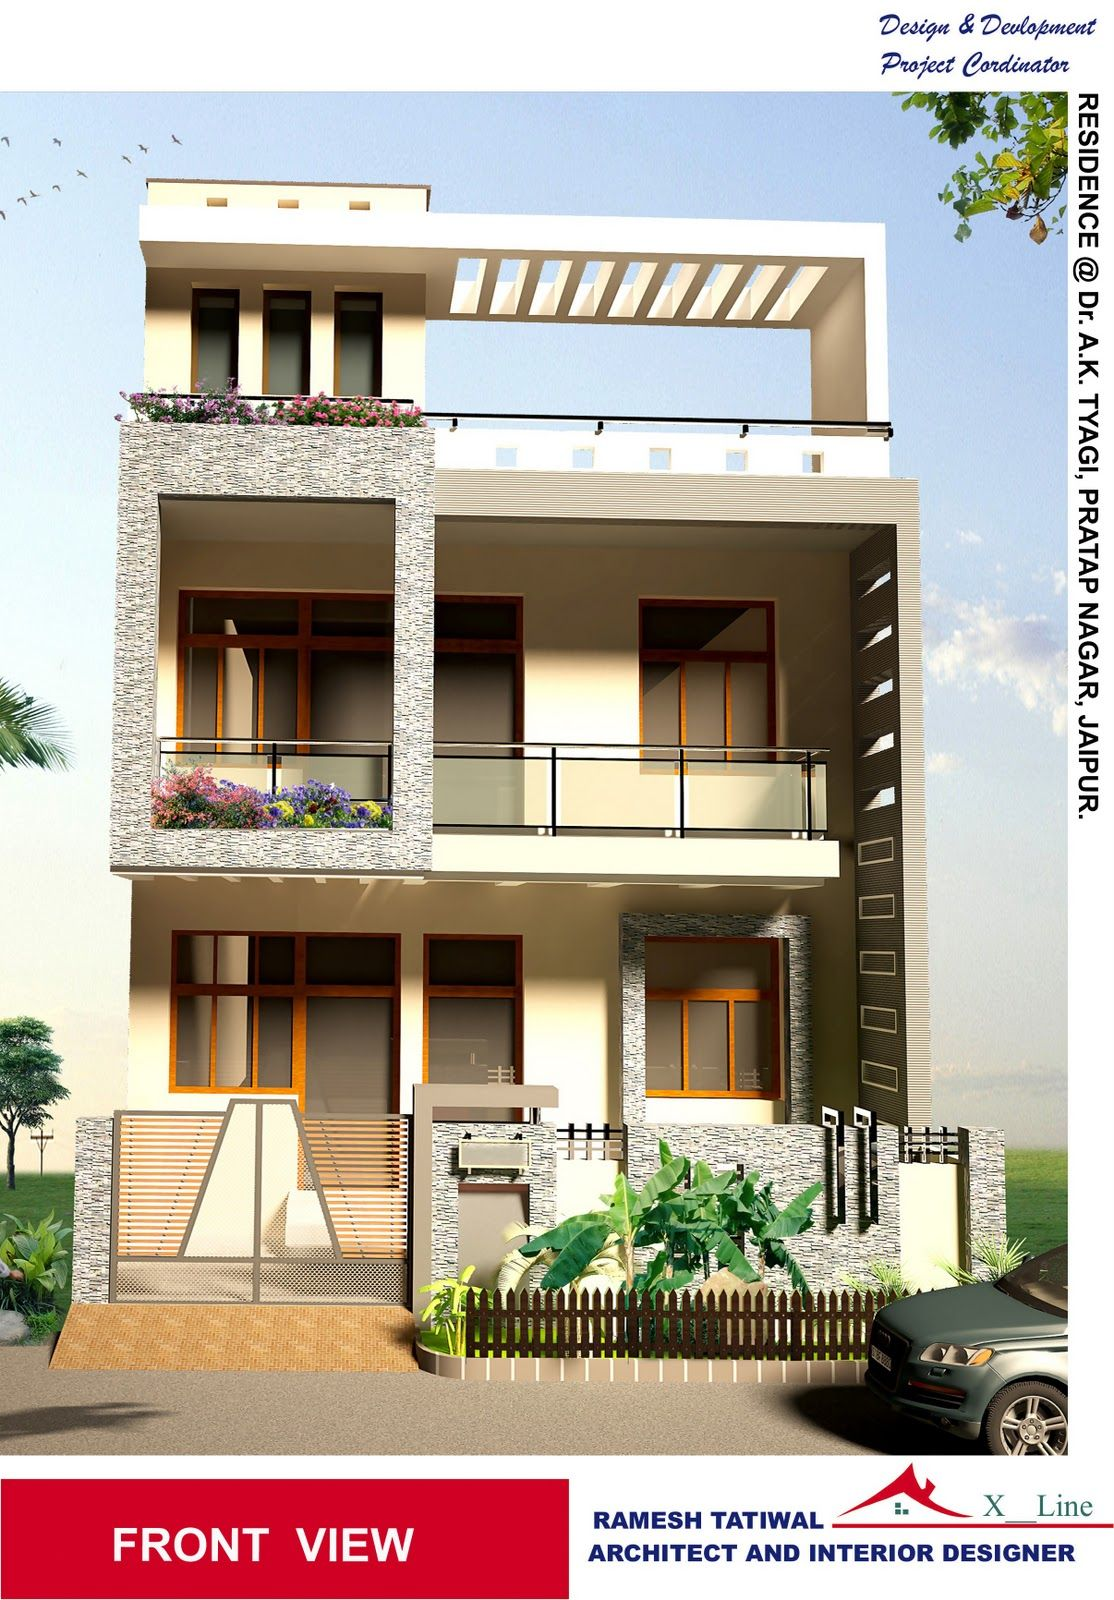 Home design house modern house for Home design images